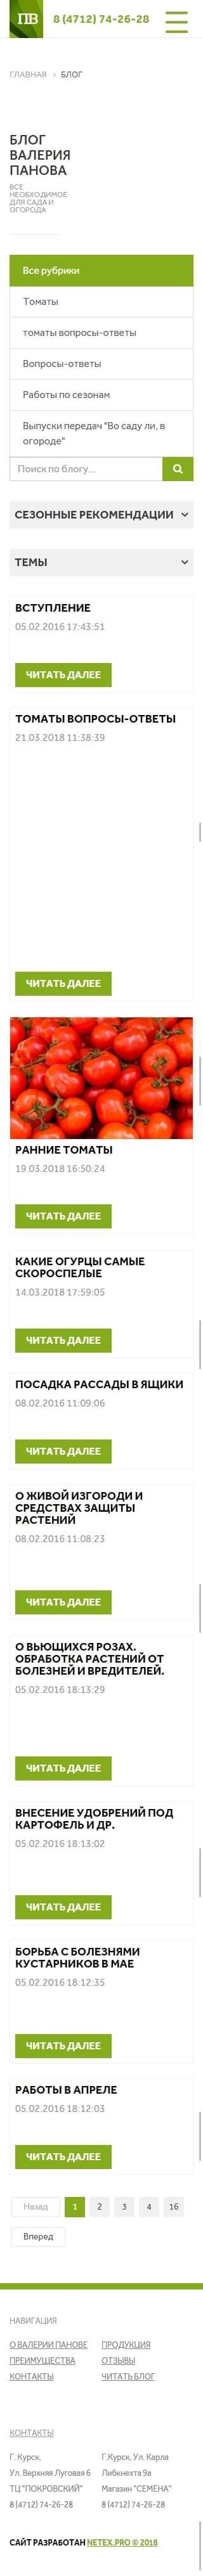 image of the mobile version of the site «Sadovod»